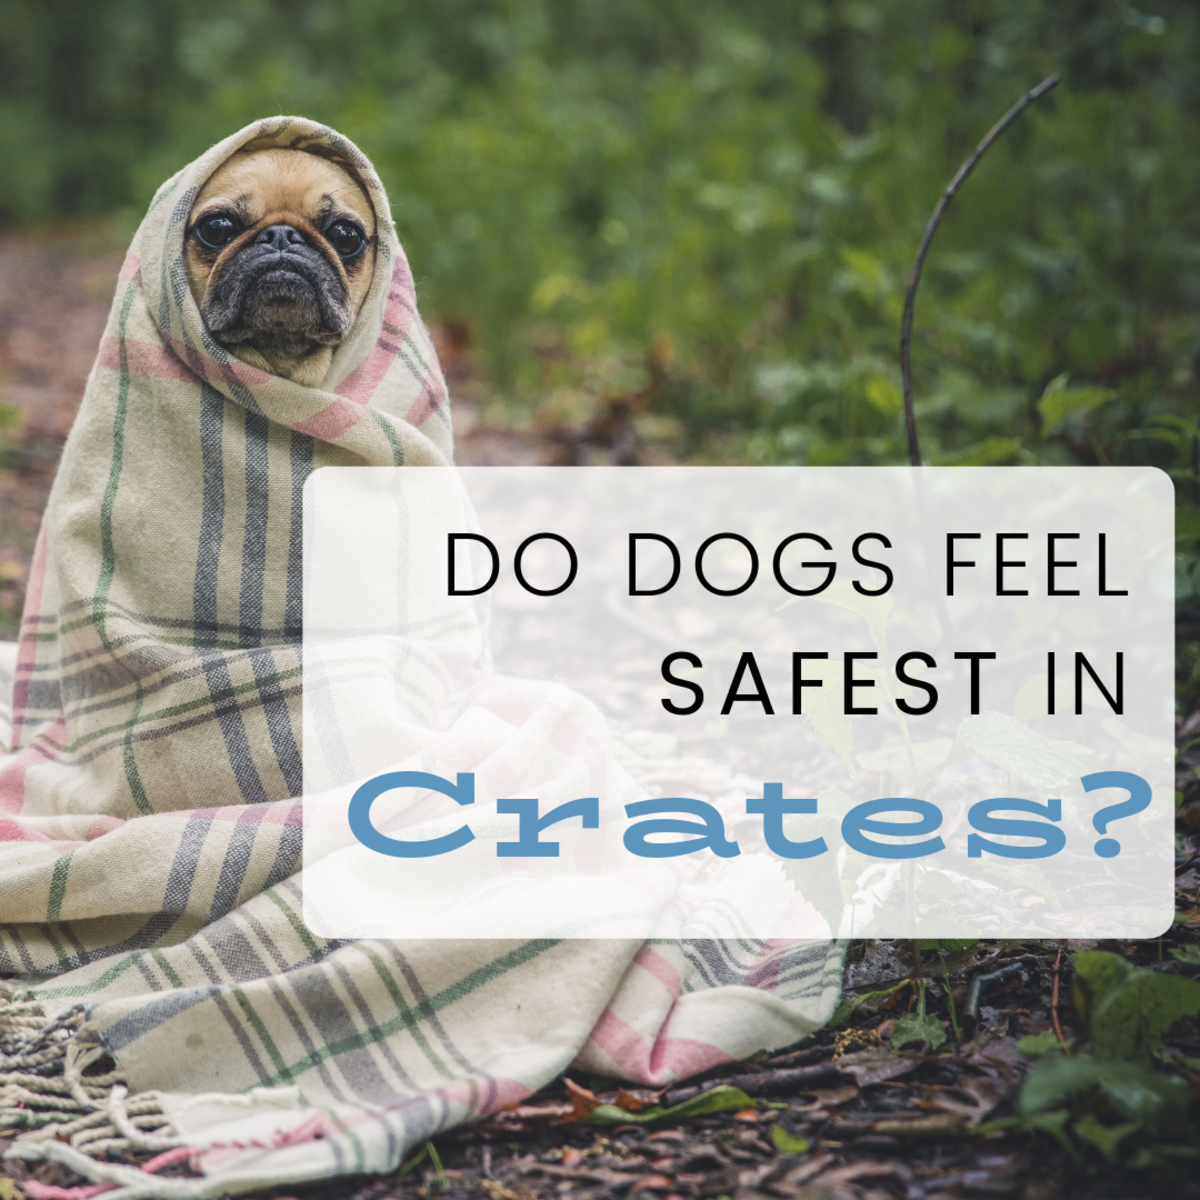 Are dogs really den animals? To crate or not to crate?